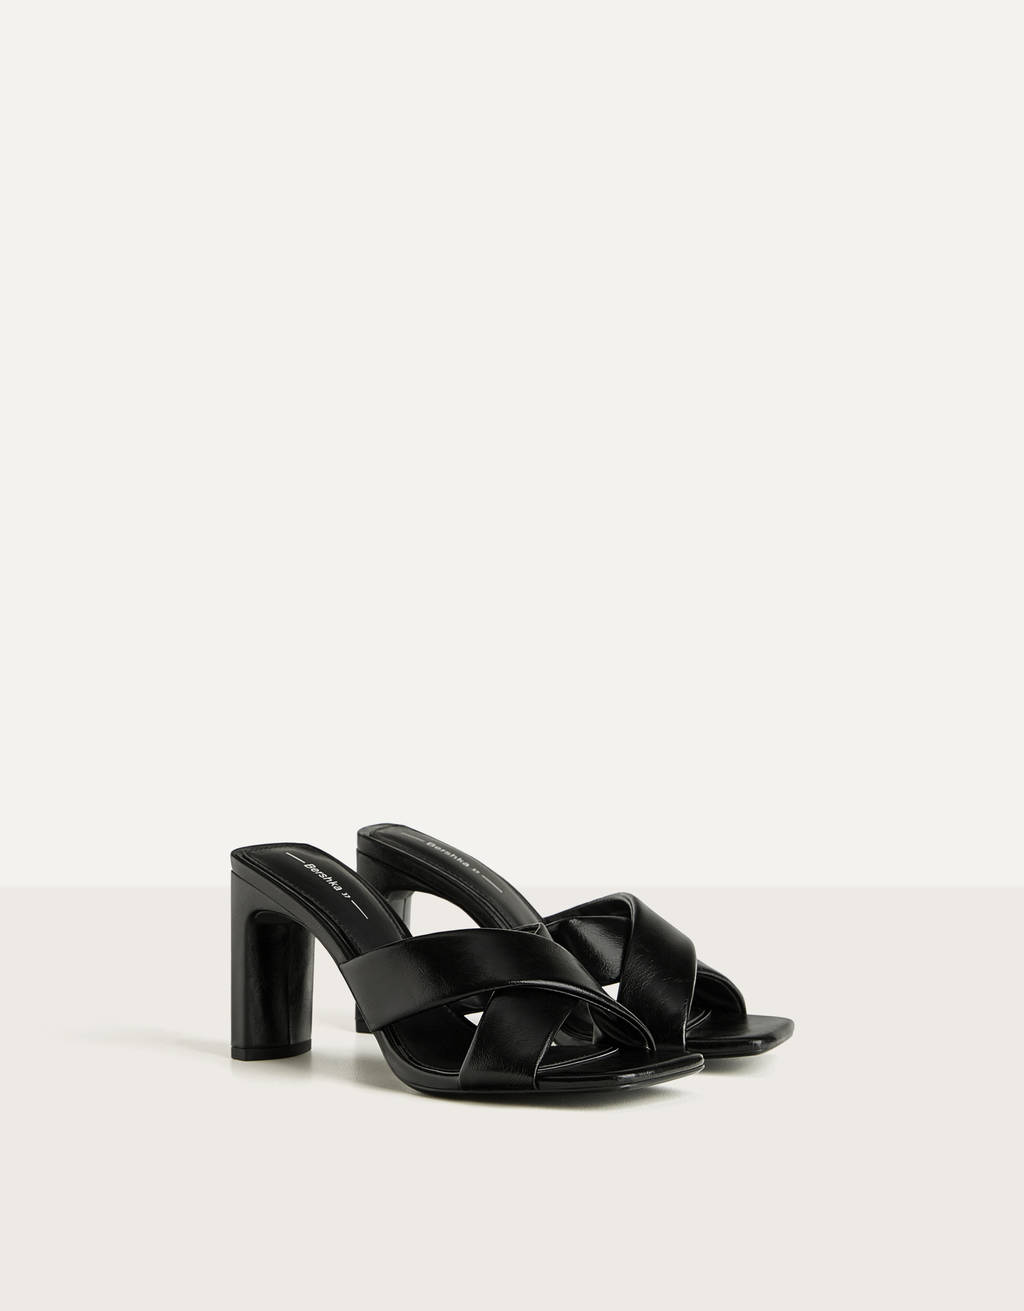 Heeled sandals with crossover straps